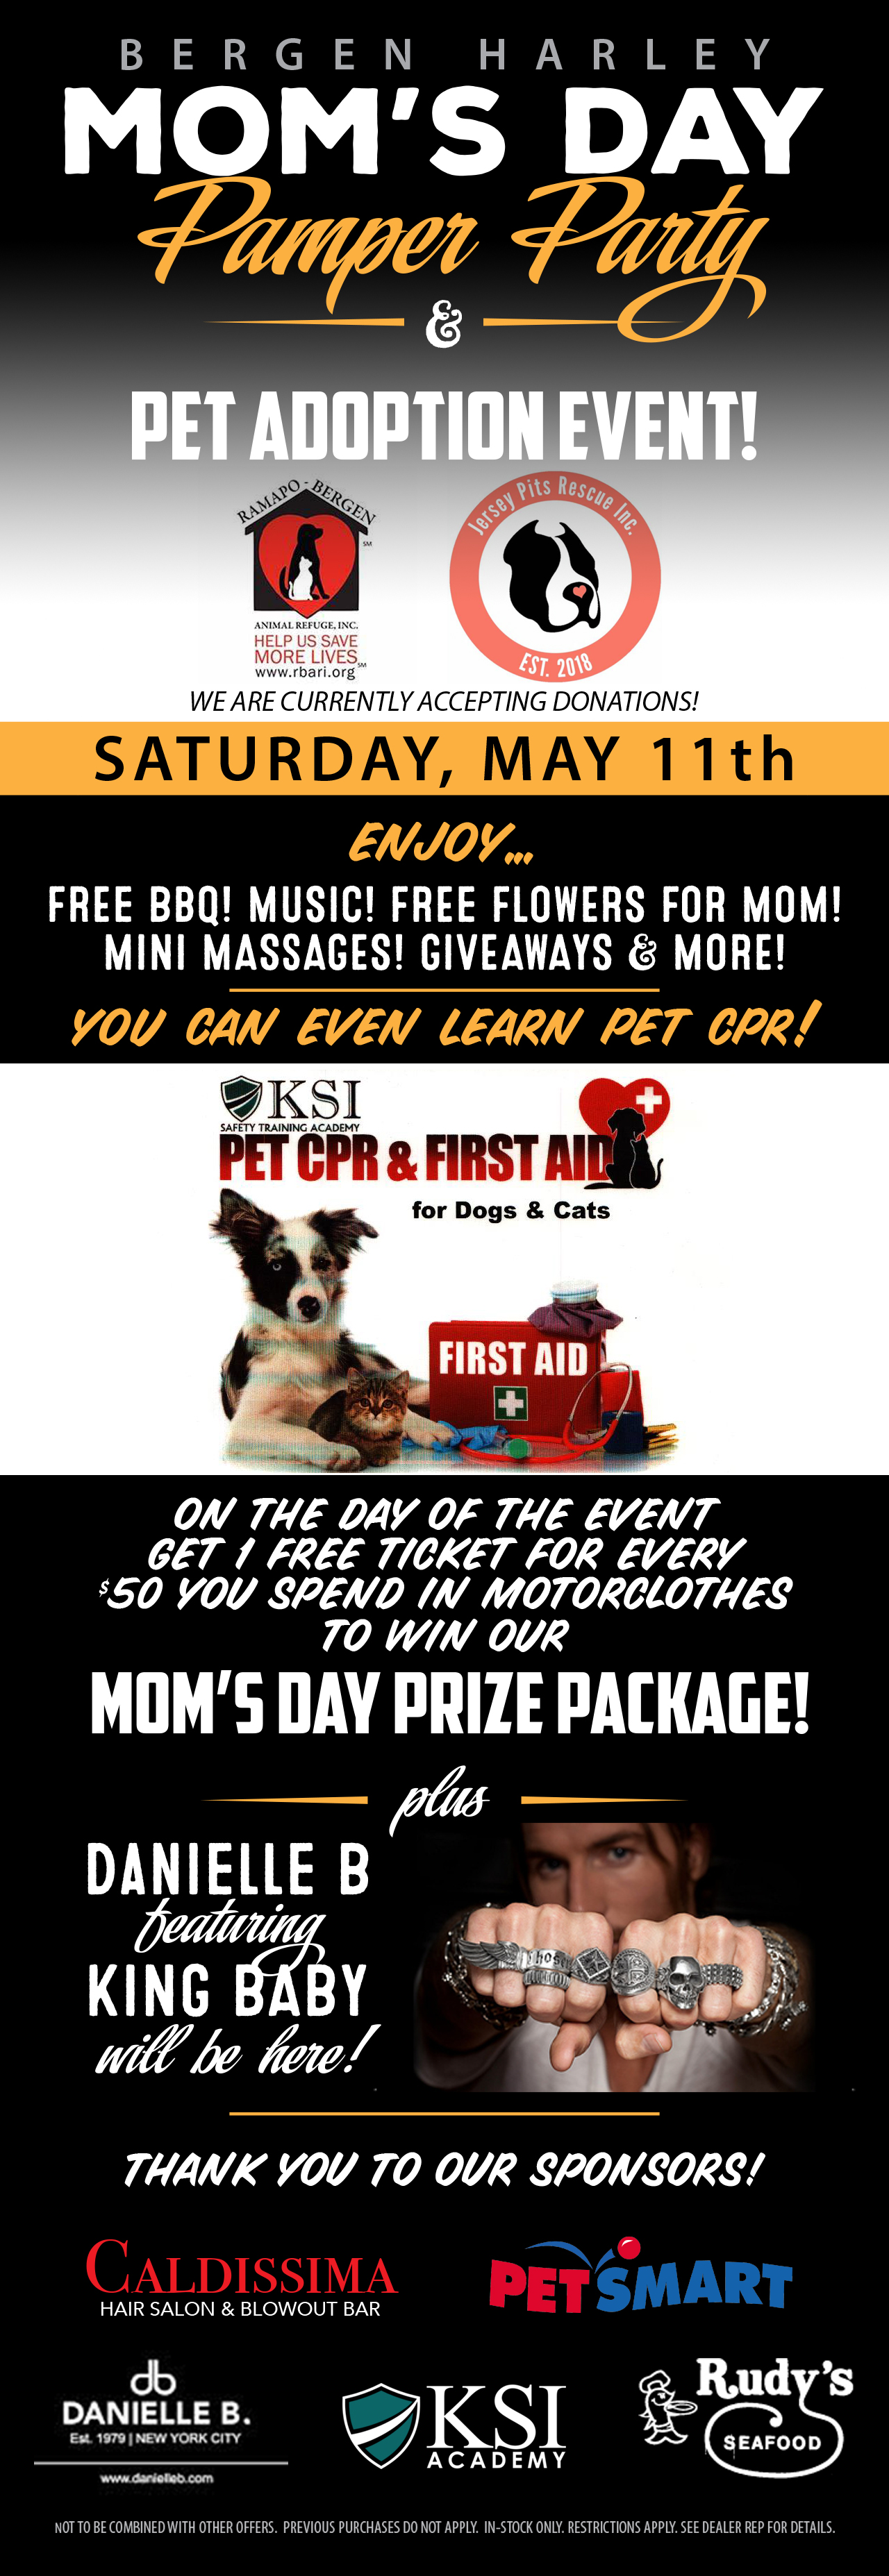 Bergen Harley Mom's Day Pamper Party & Pet Adoption Event!